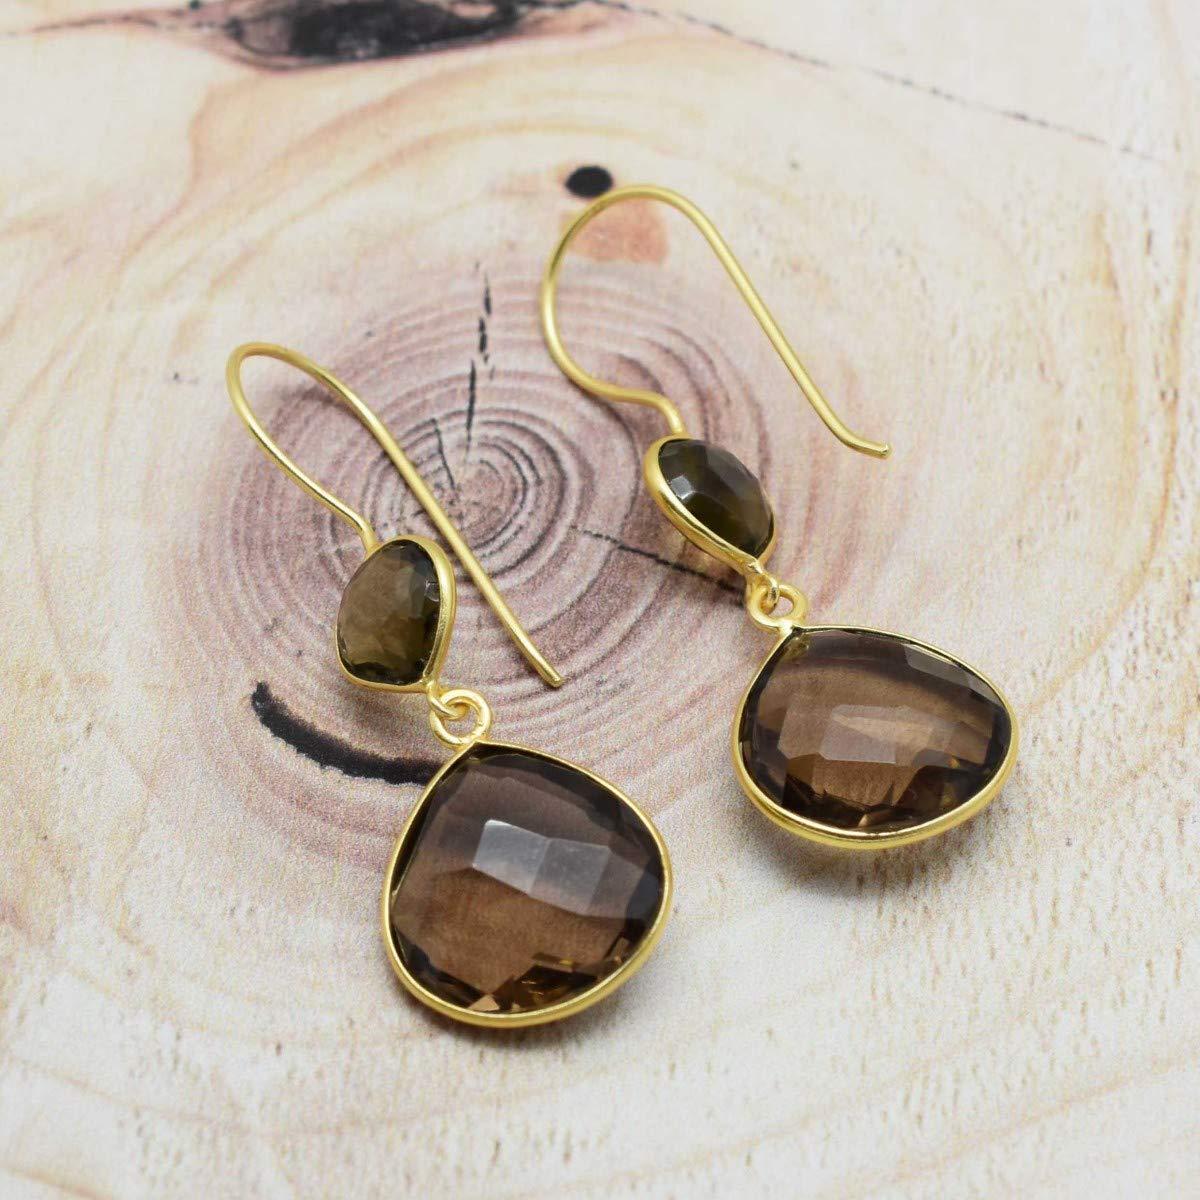 The V Collection Earrings Dangling Smokey Drop Earrings 22k Gold Plated Fashion Jewelry Earrings for Women and Girls